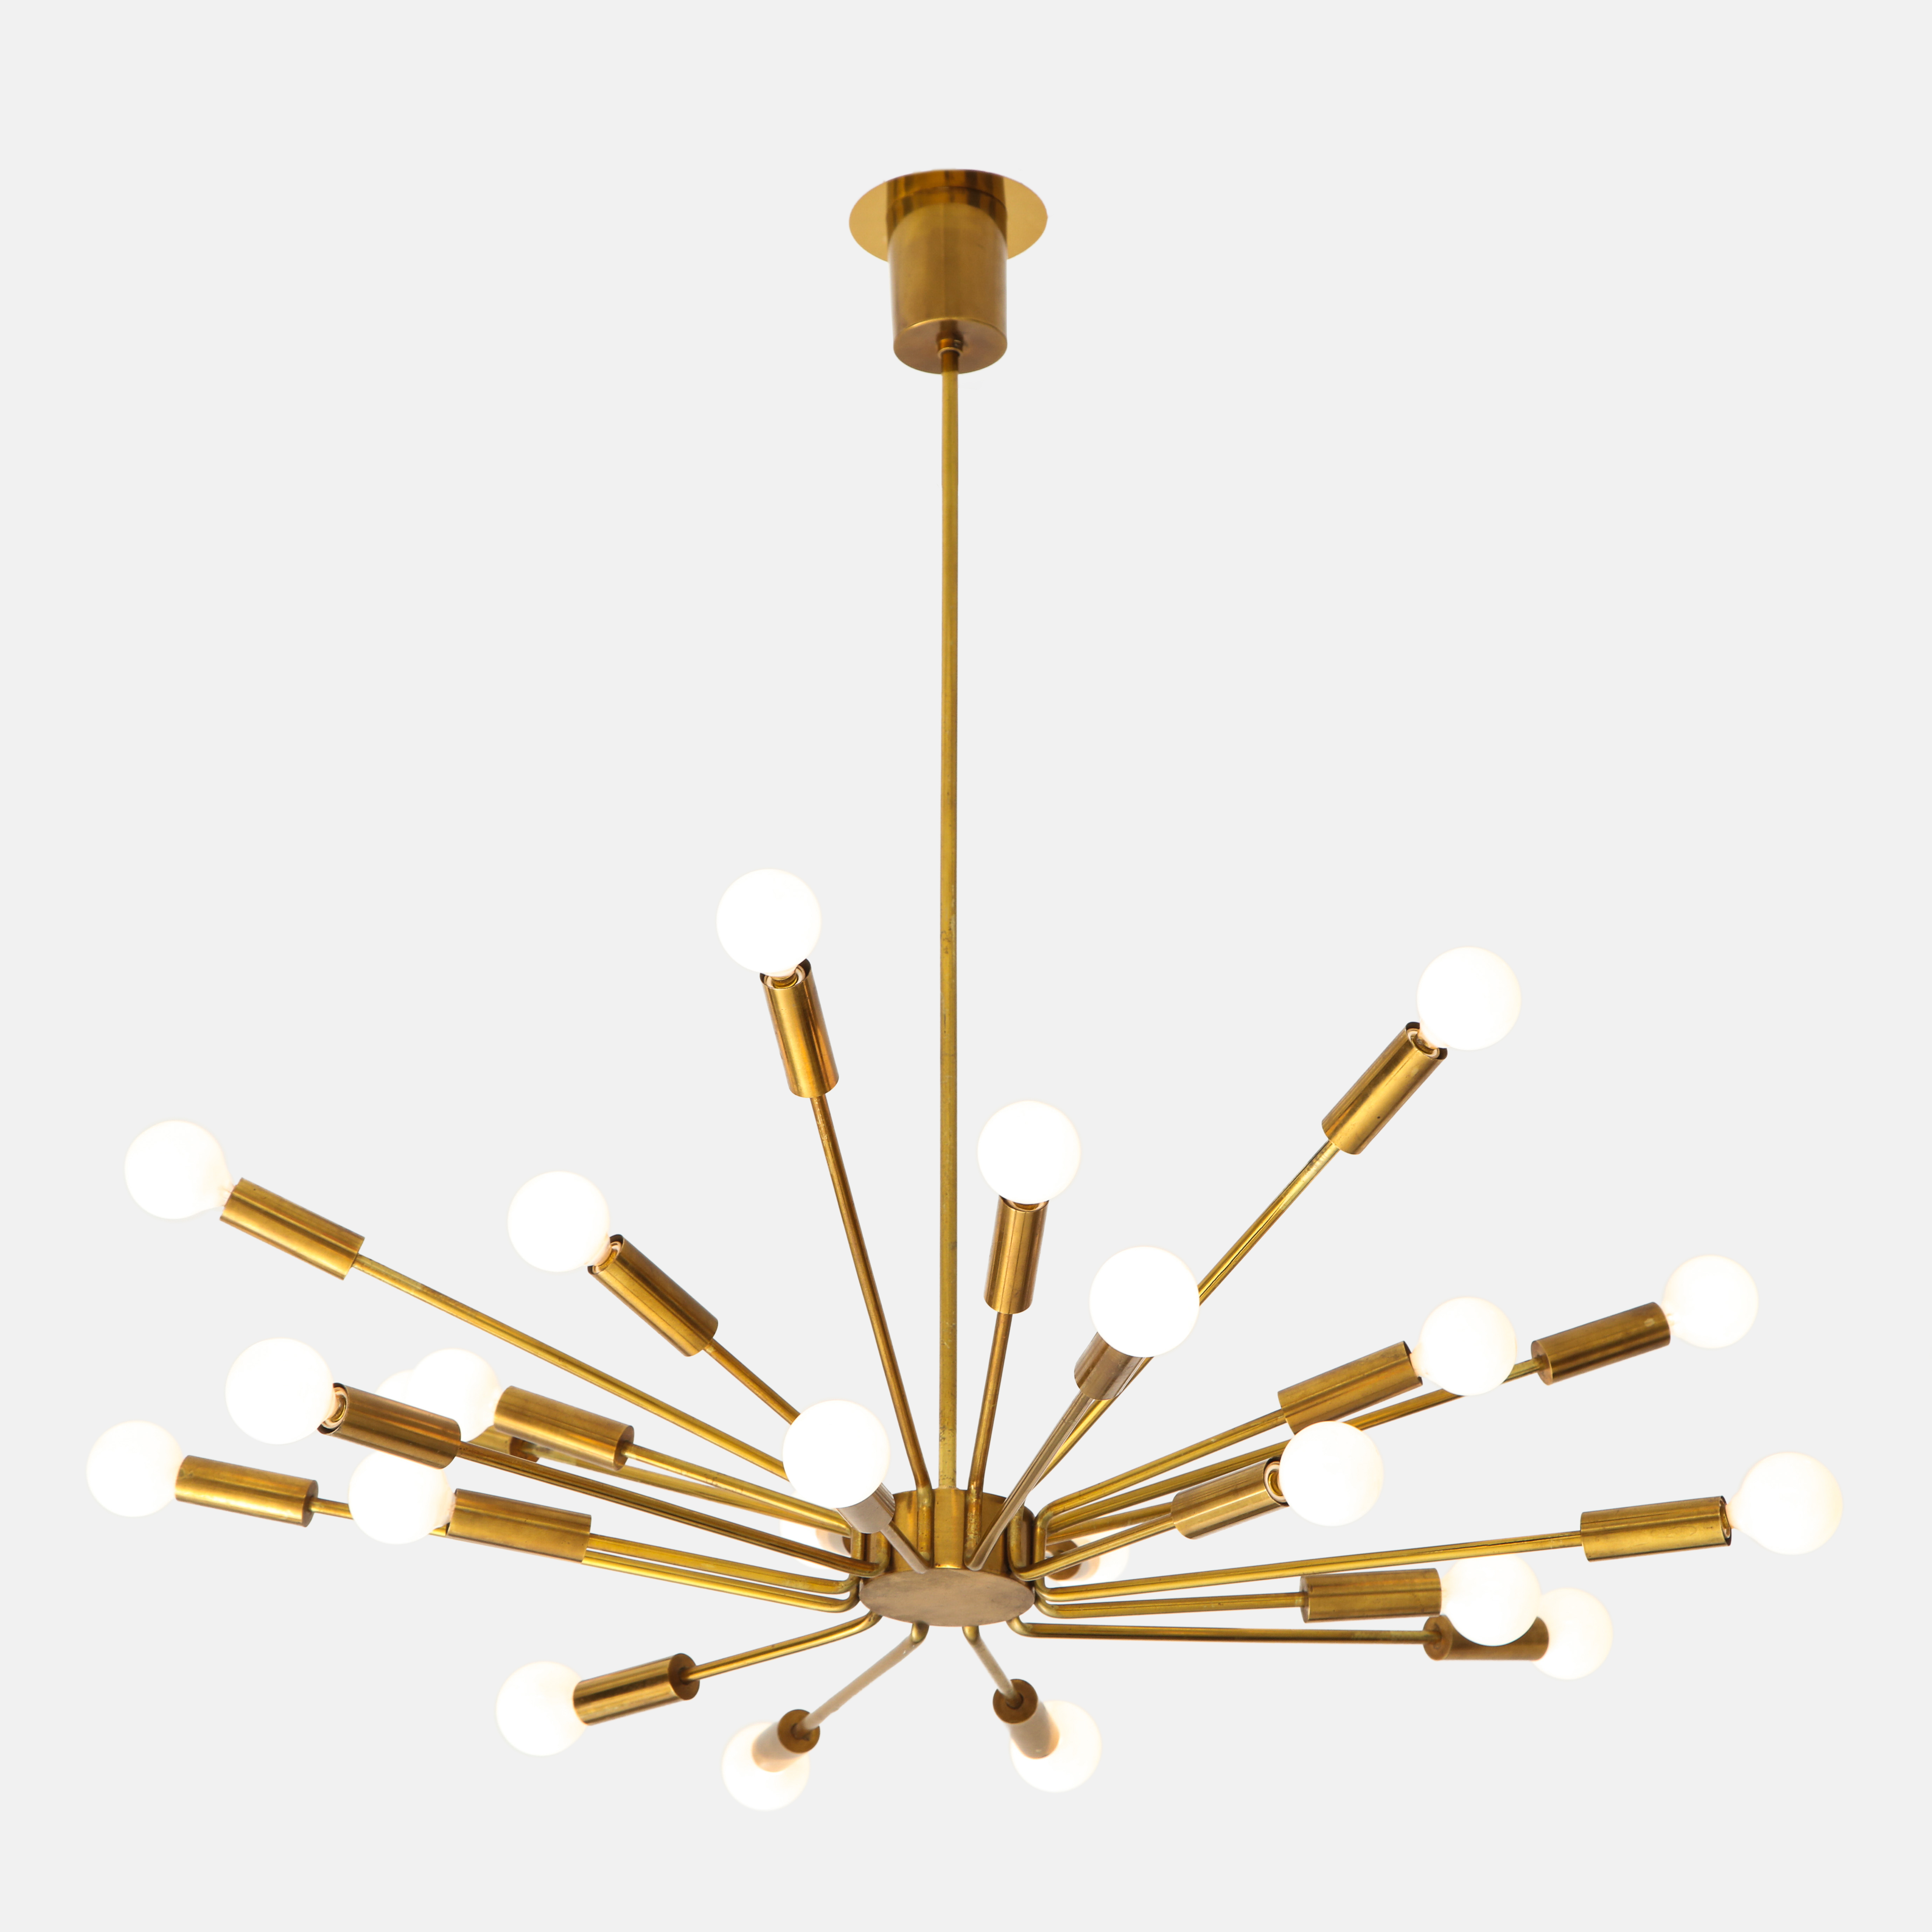 Rare 'Fuoco d'artificio' Sputnik Chandelier by Gino Sarfatti for Arteluce | soyun k.